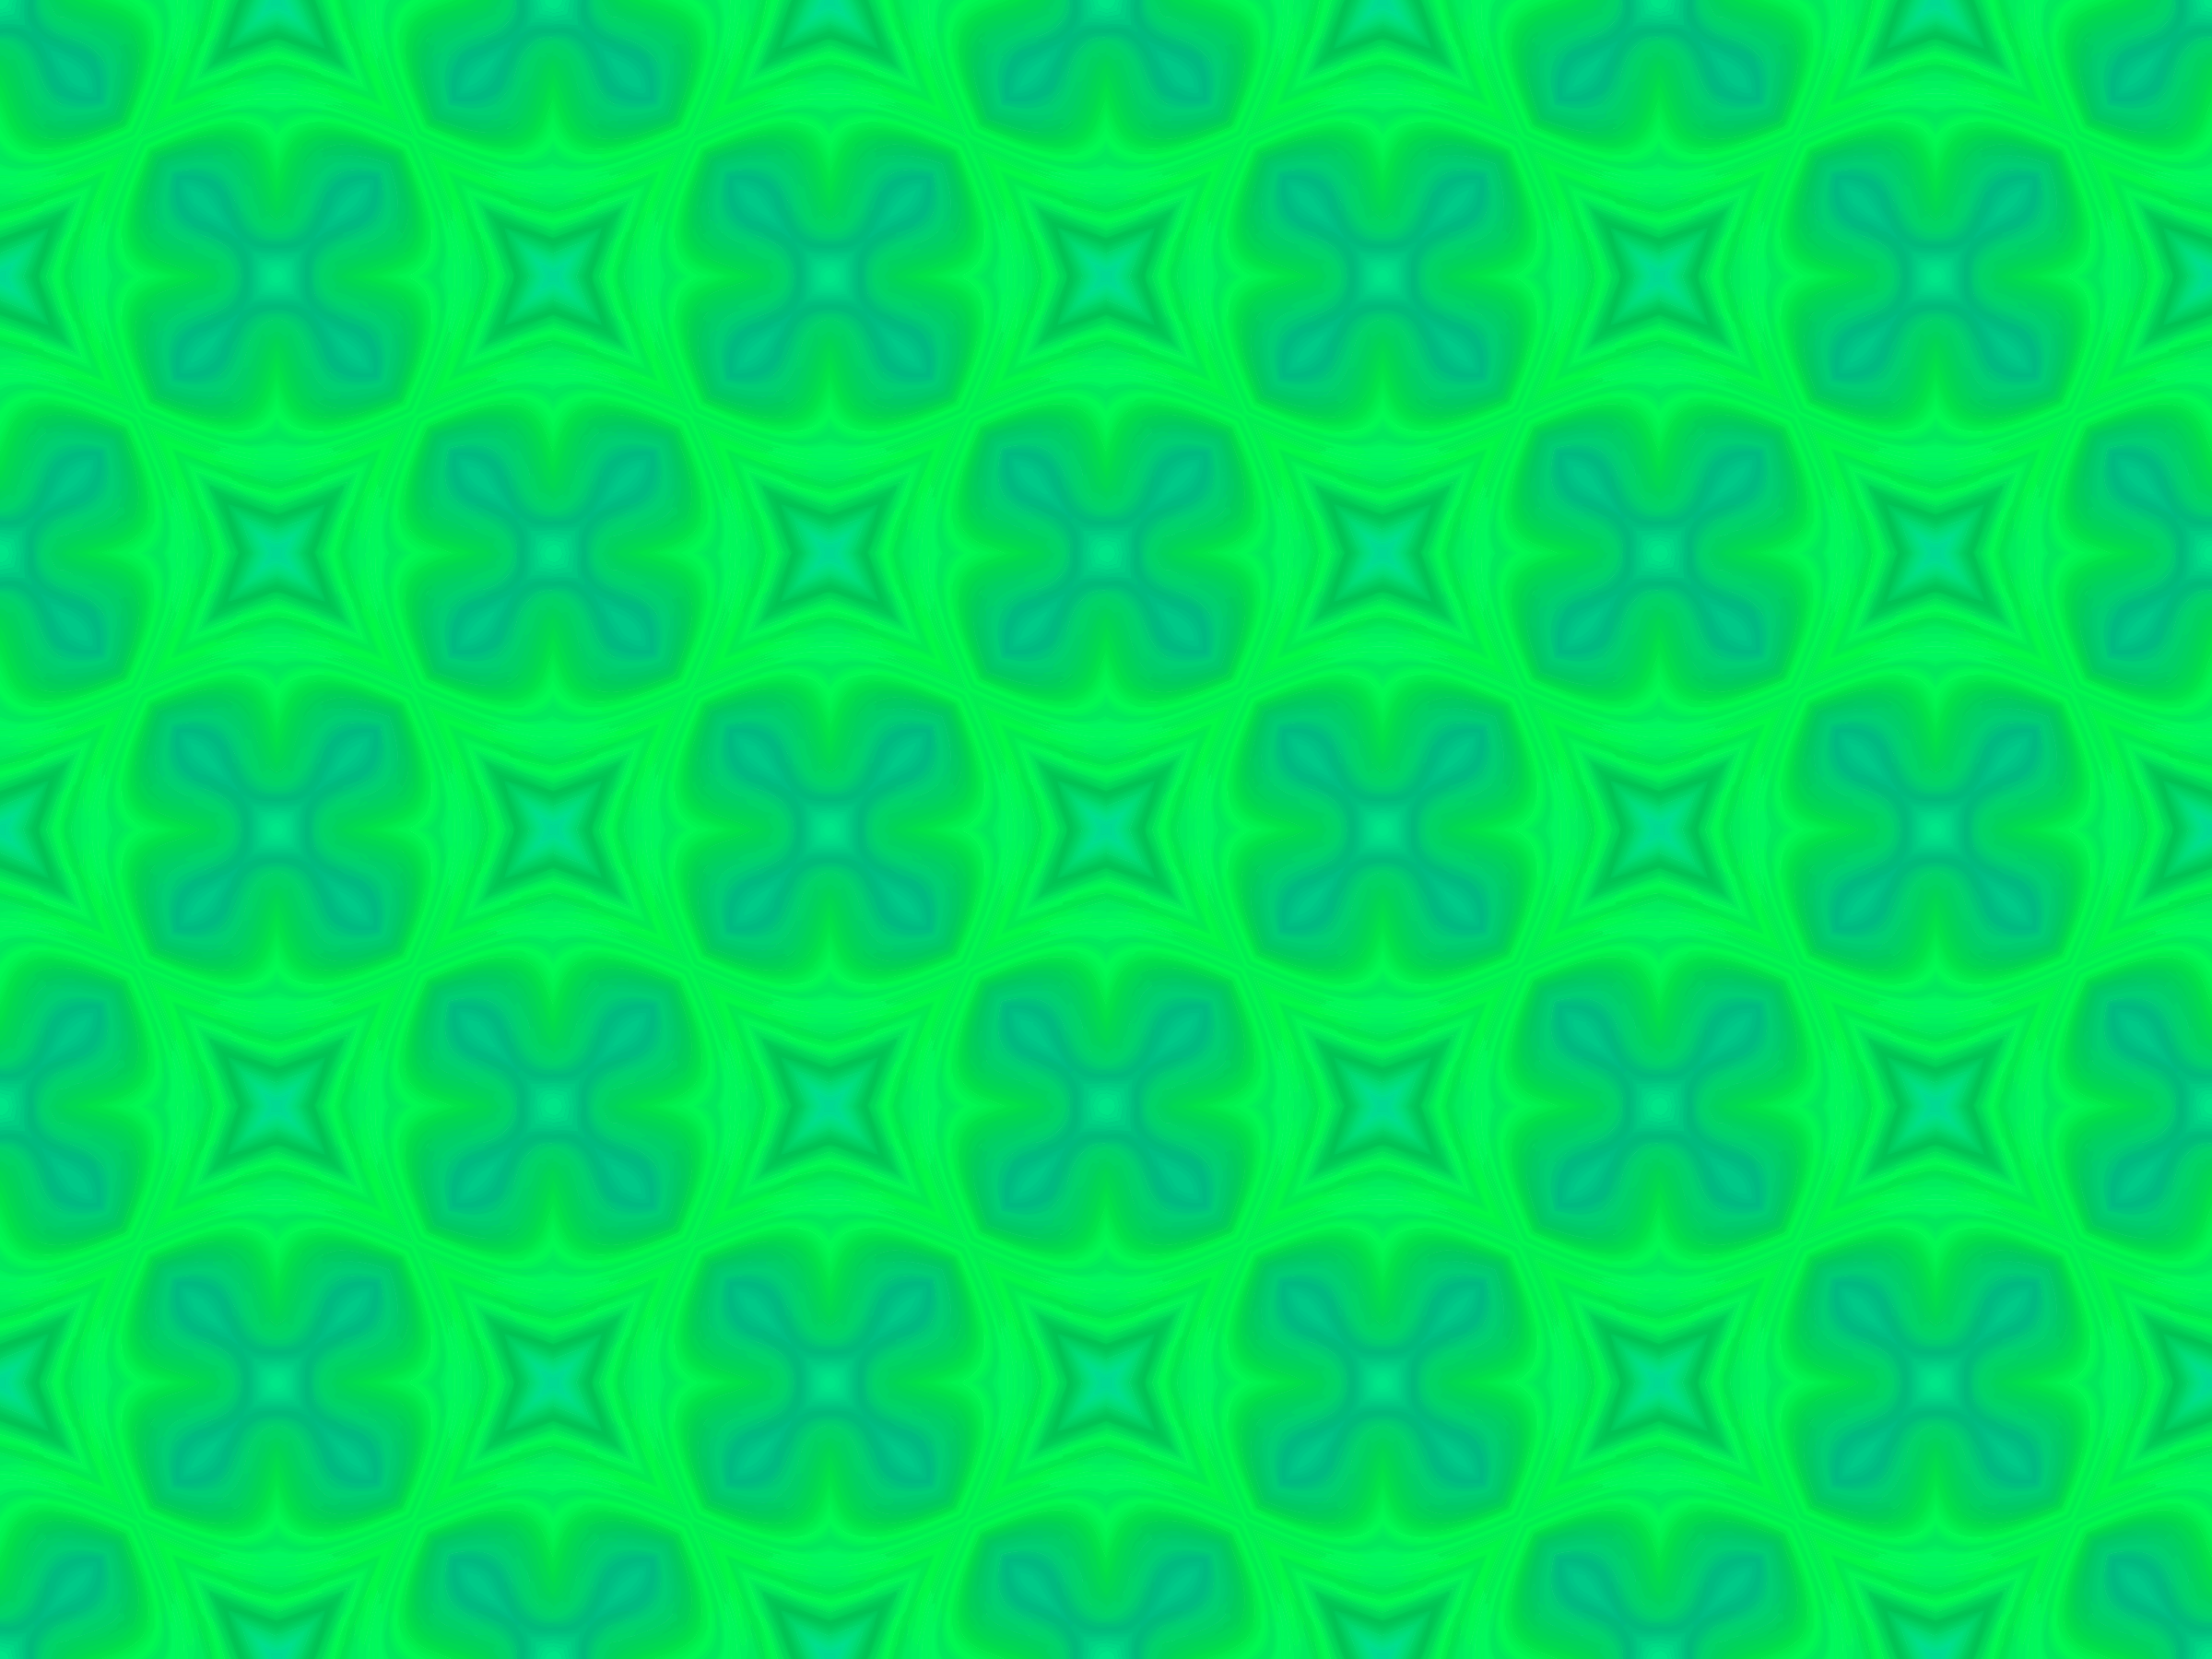 Background pattern 230 (colour 3) by Firkin